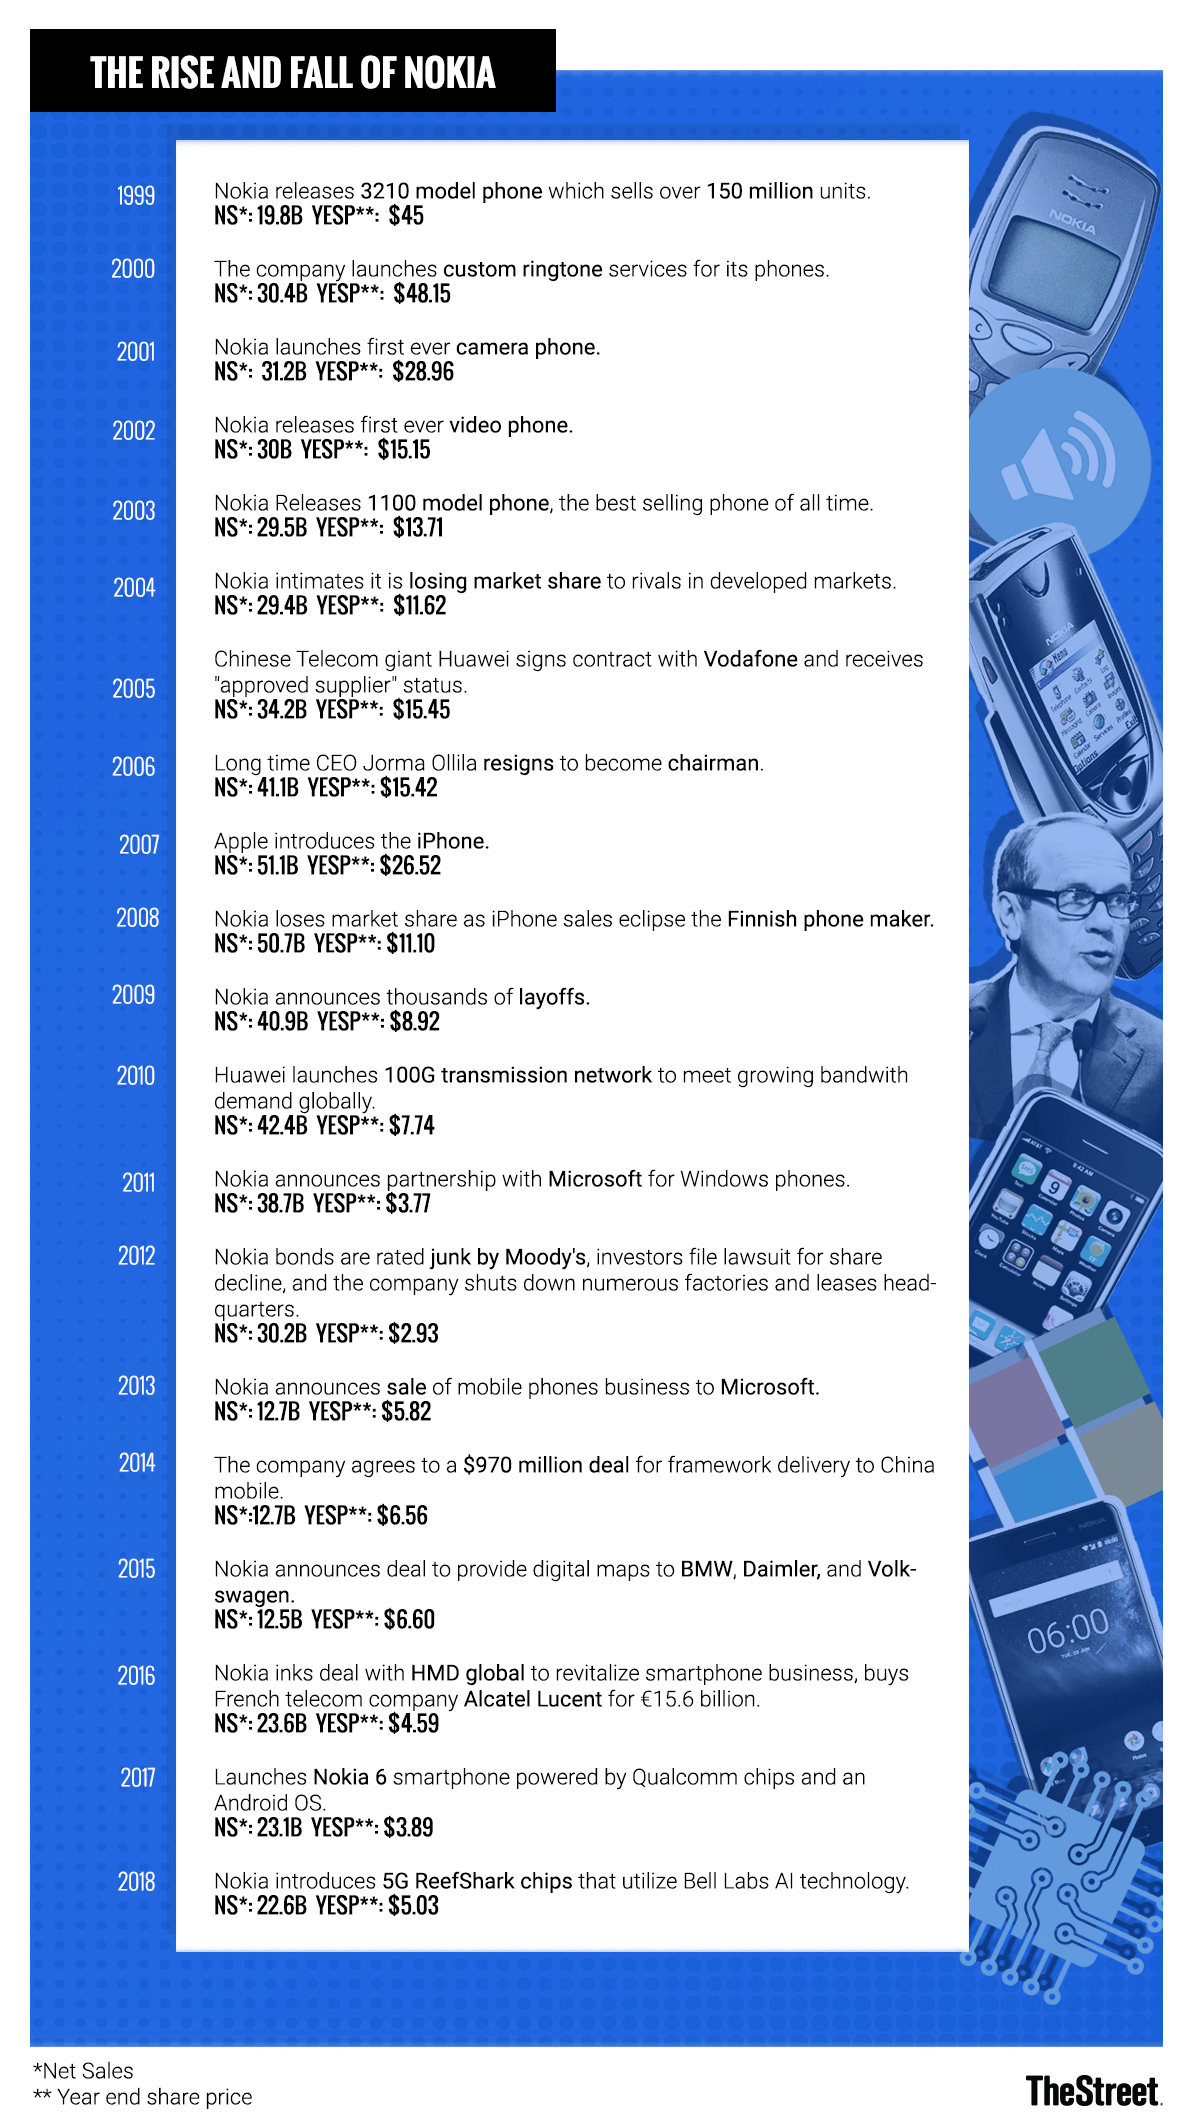 Chart of the Day: A Timeline of Nokia's Rise and Fall